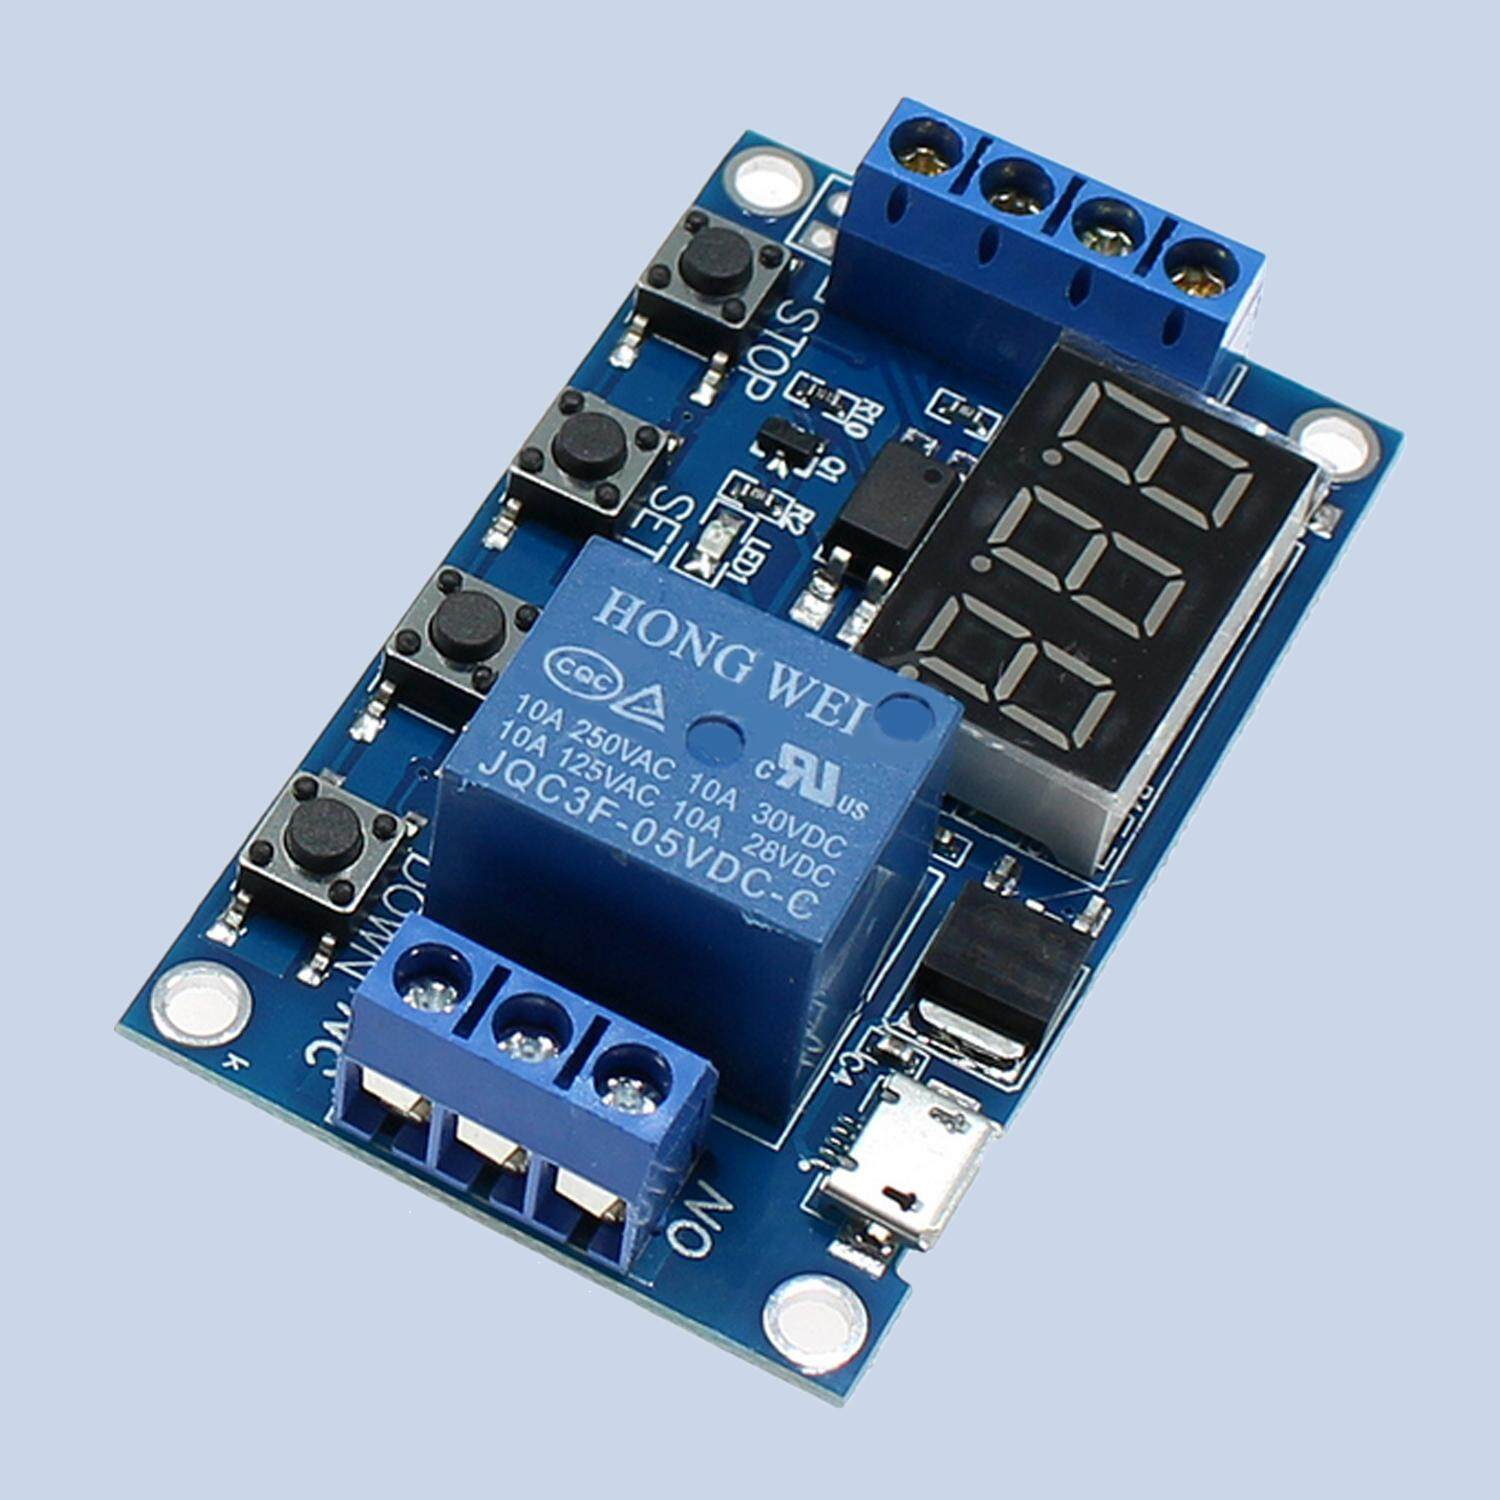 6-30v Micro Usb Support Relay Timer Cycle Module Switch Trigger Time Delay Circuit Board By Jelly Store.